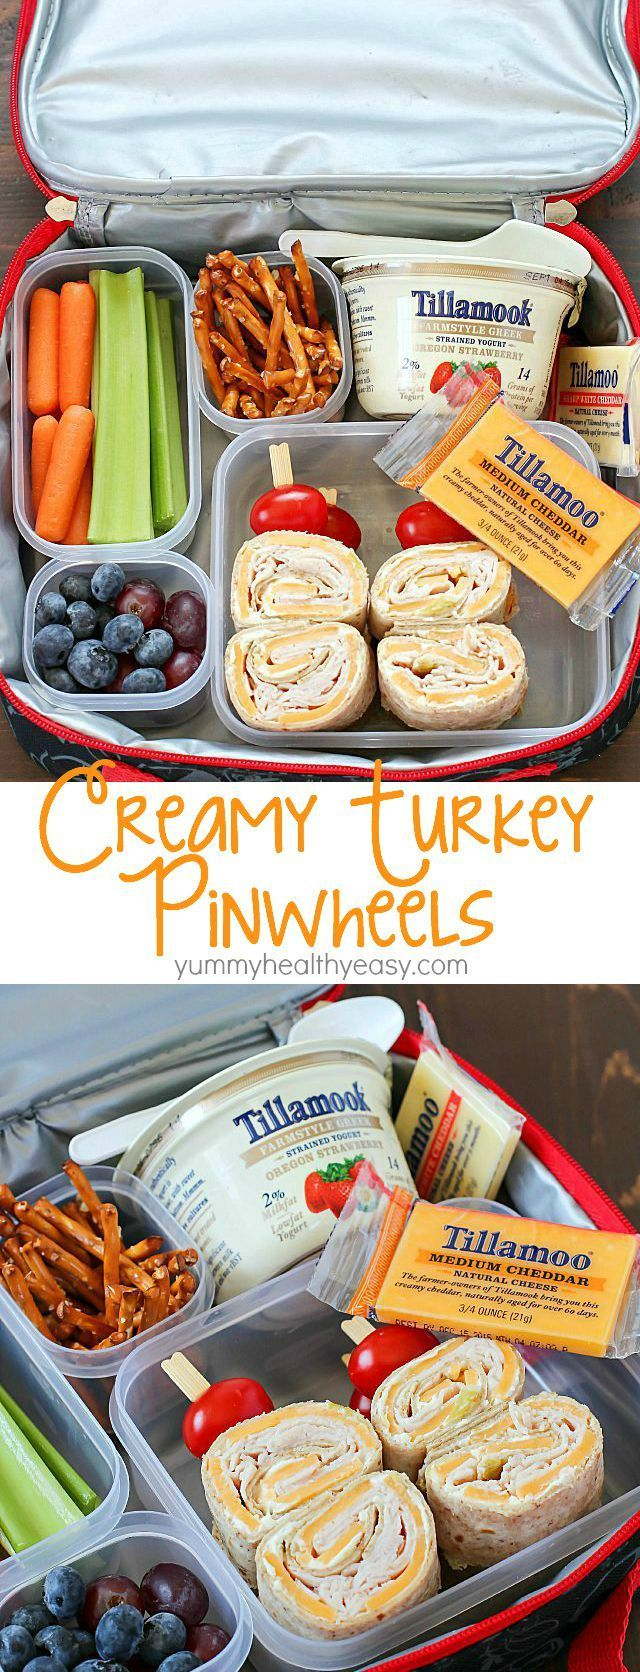 Ready for back-to-school? Pack some easy Creamy Turkey Pinwheels in your kids' lunchboxes this year! Tillamook #DairyDoneRight Ad